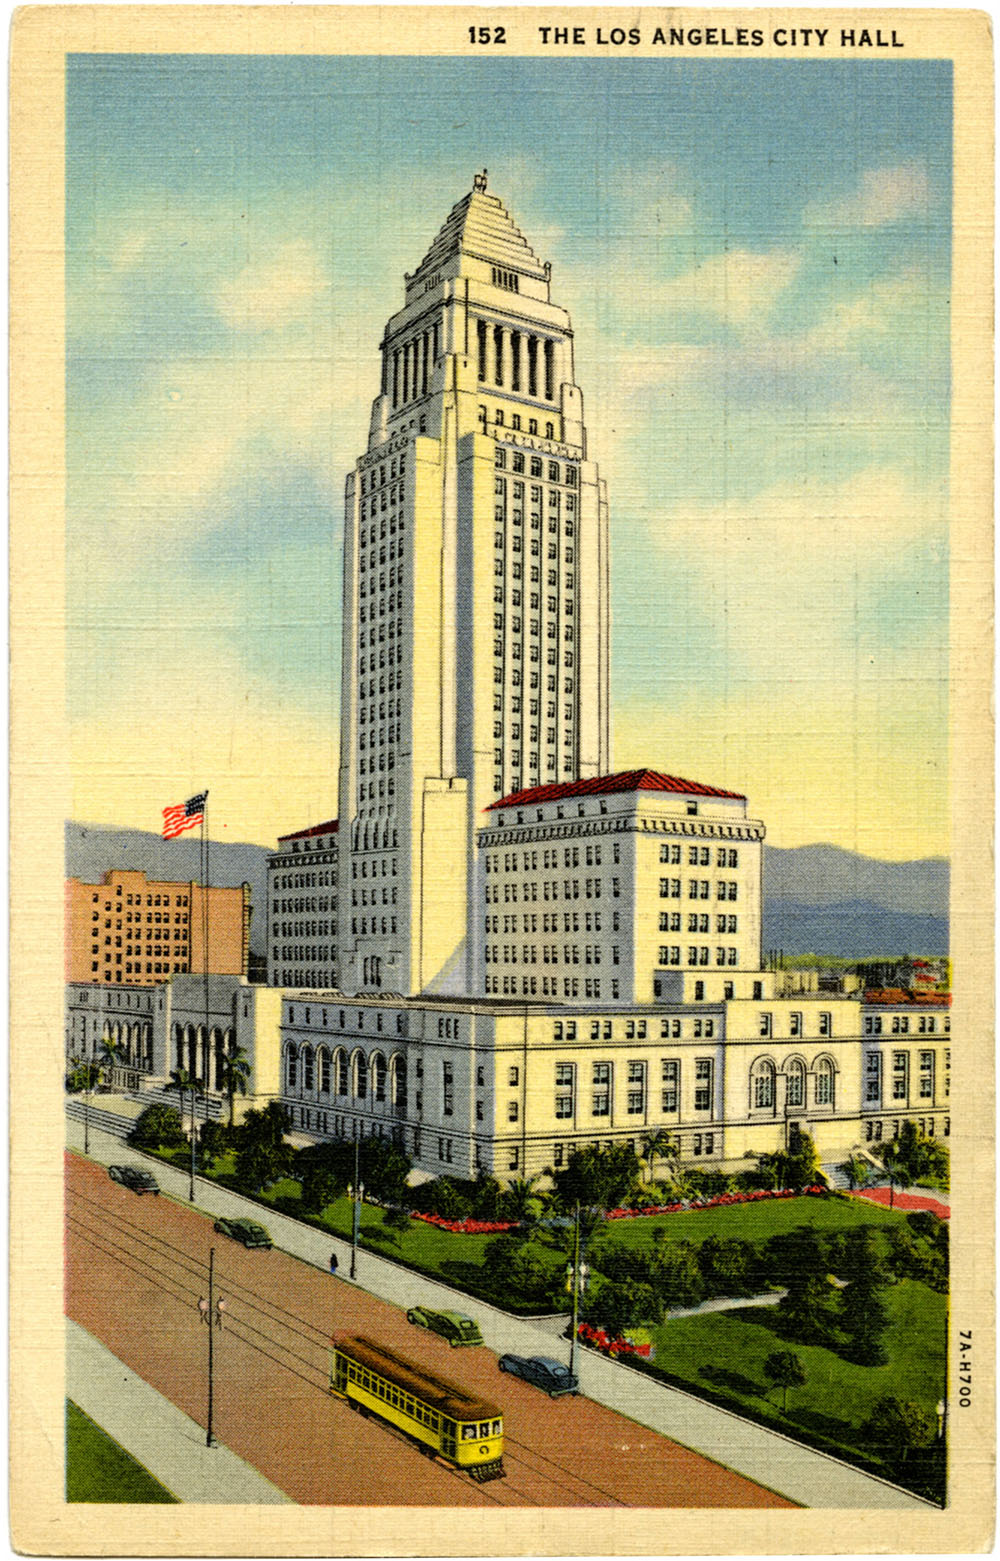 Postcard of Los Angeles City Hall, circa 1938